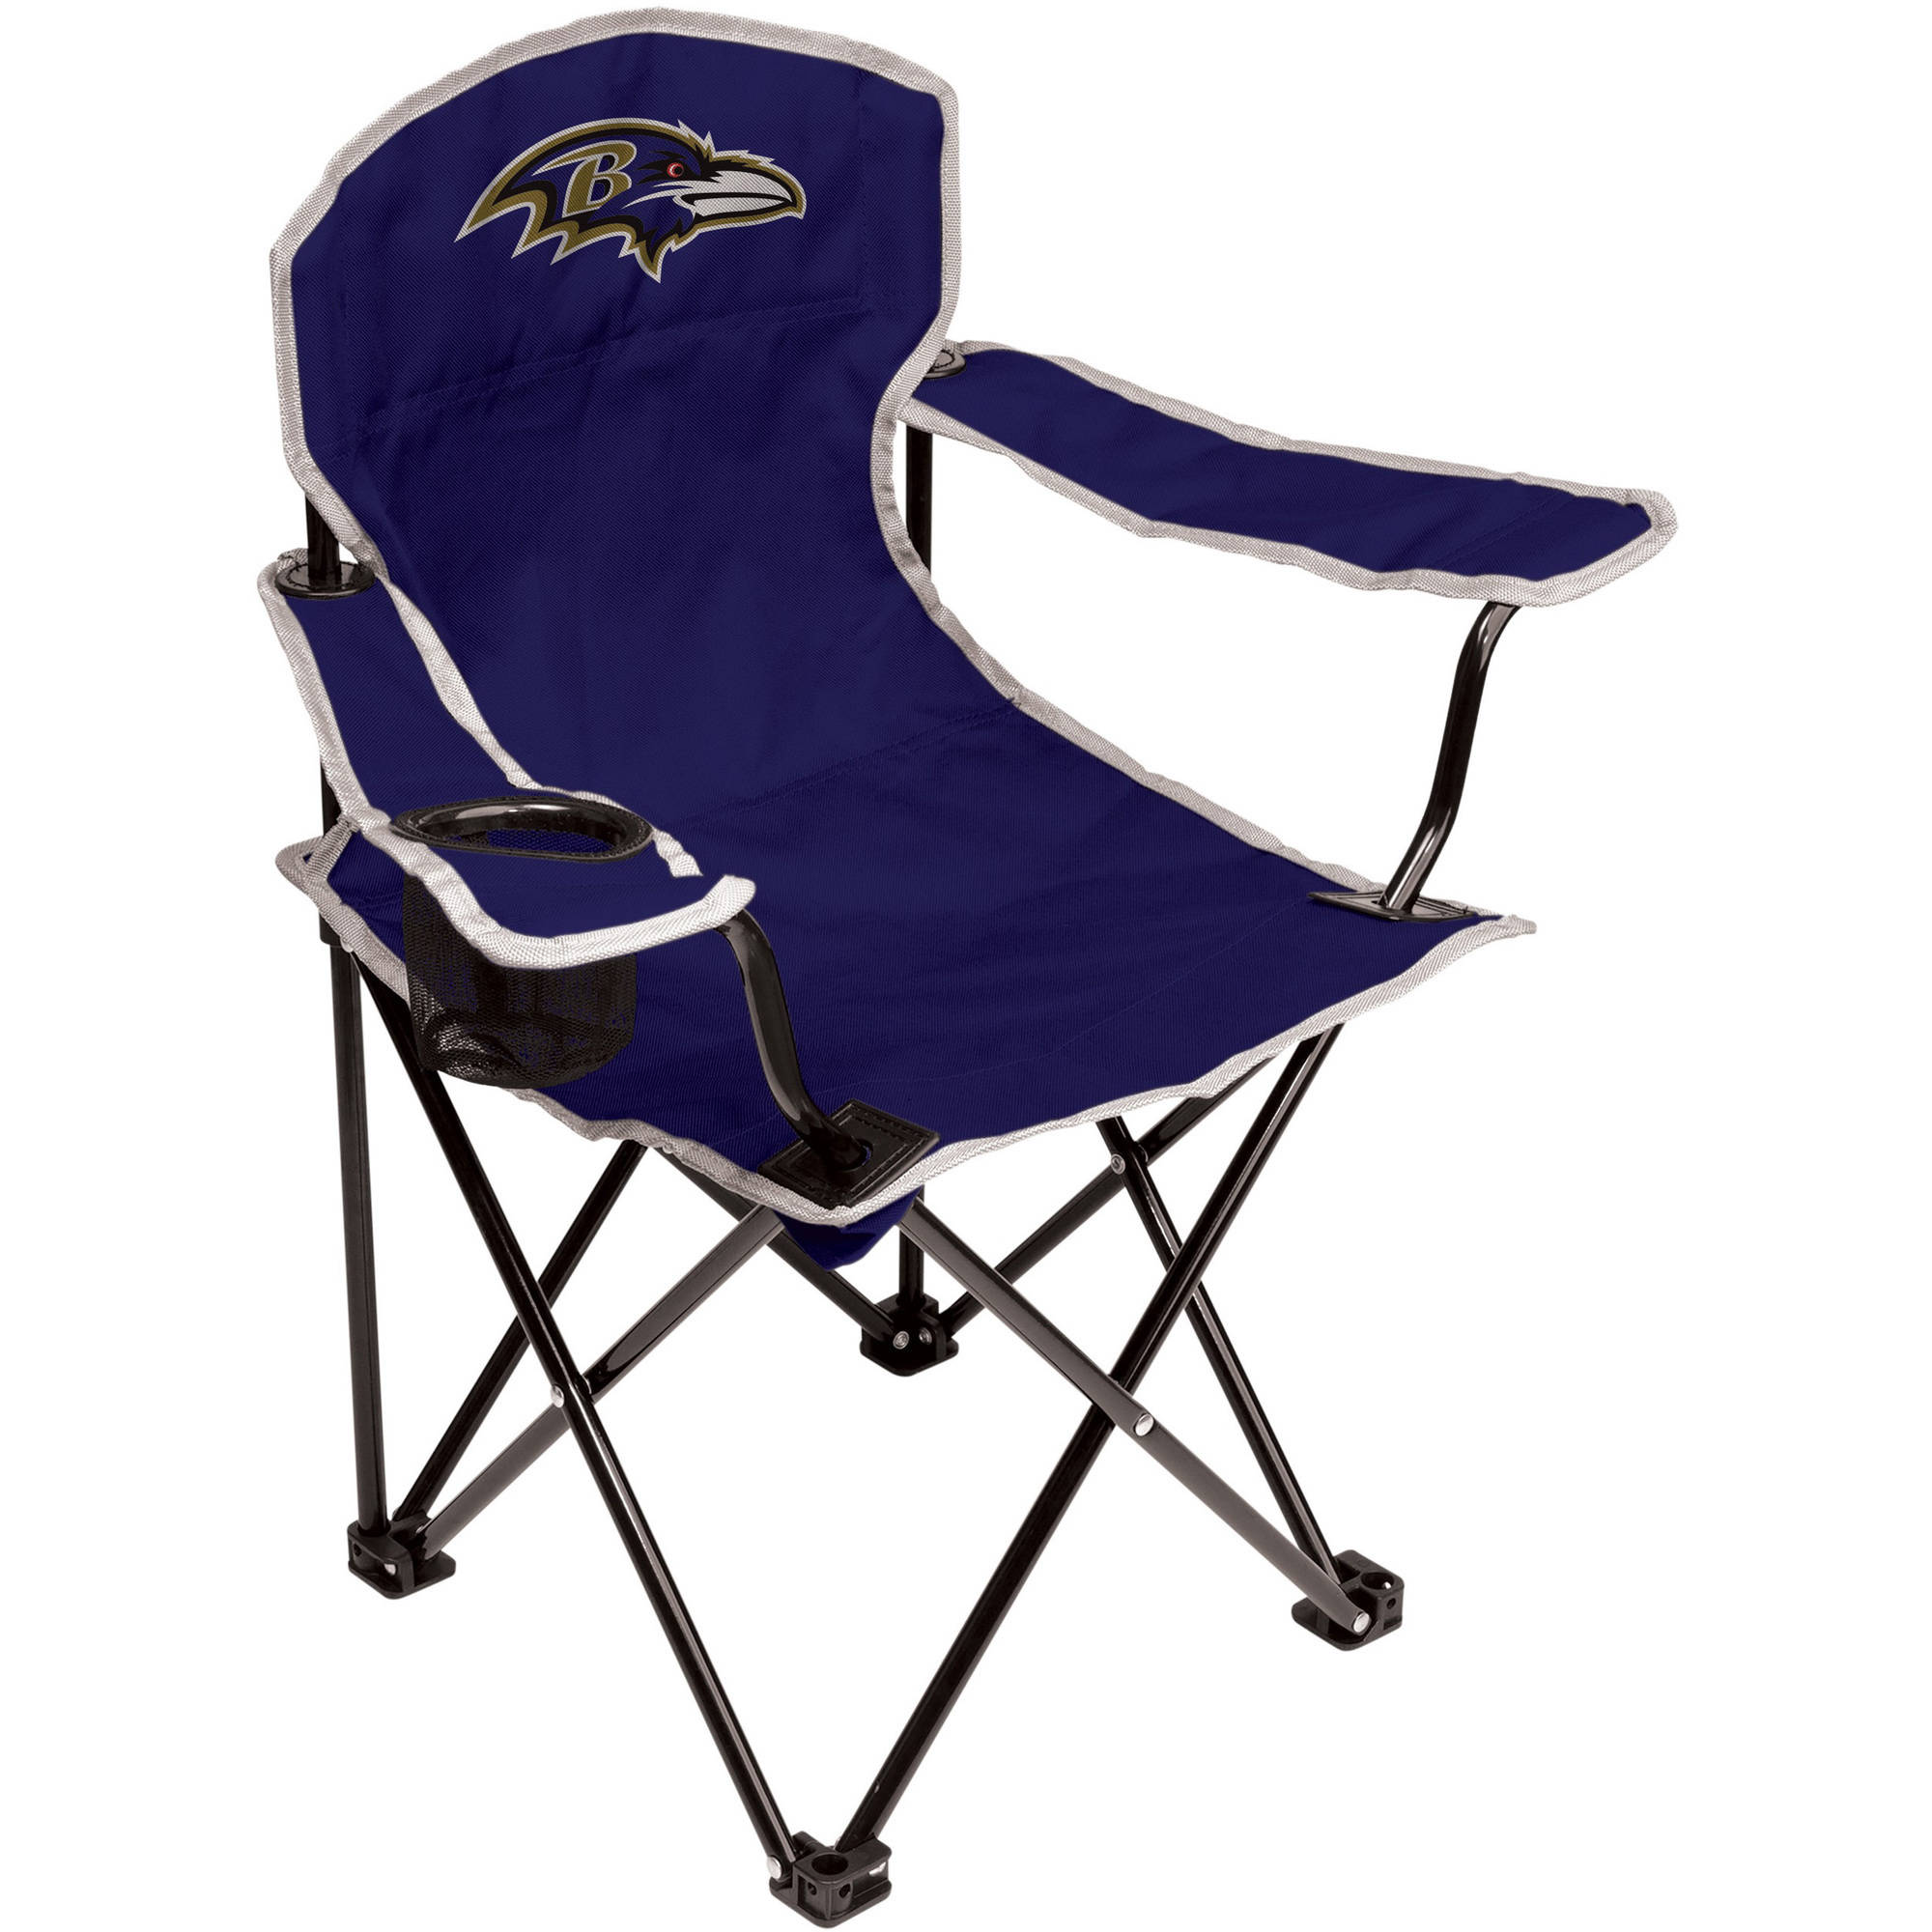 Coleman NFL Baltimore Ravens Youth Size Tailgate Chair